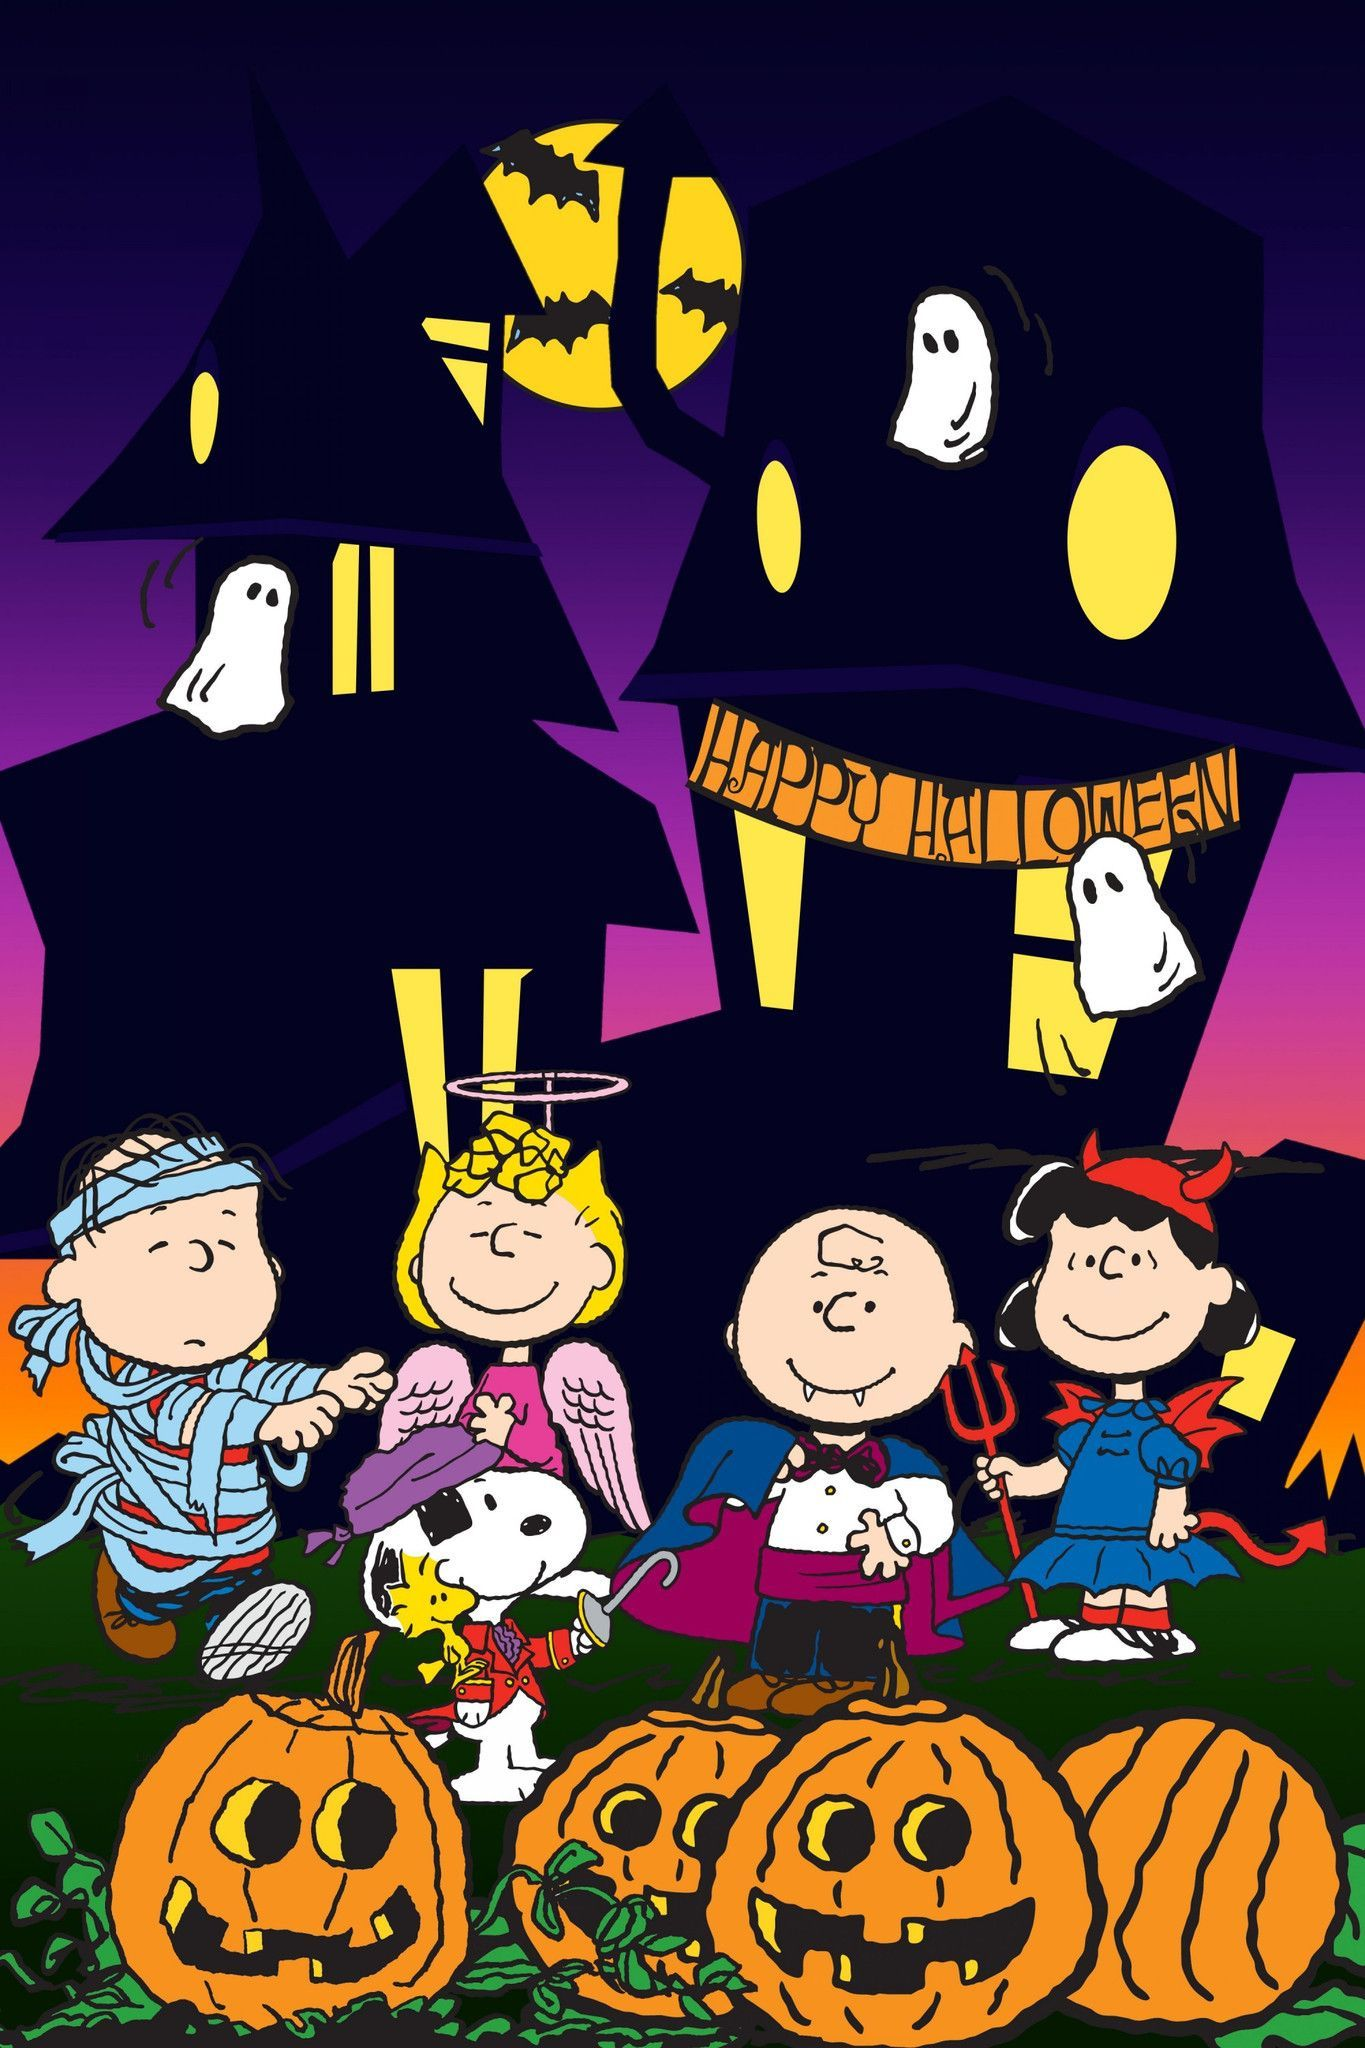 Peanuts Halloween | Peanuts characters, Costumes and House